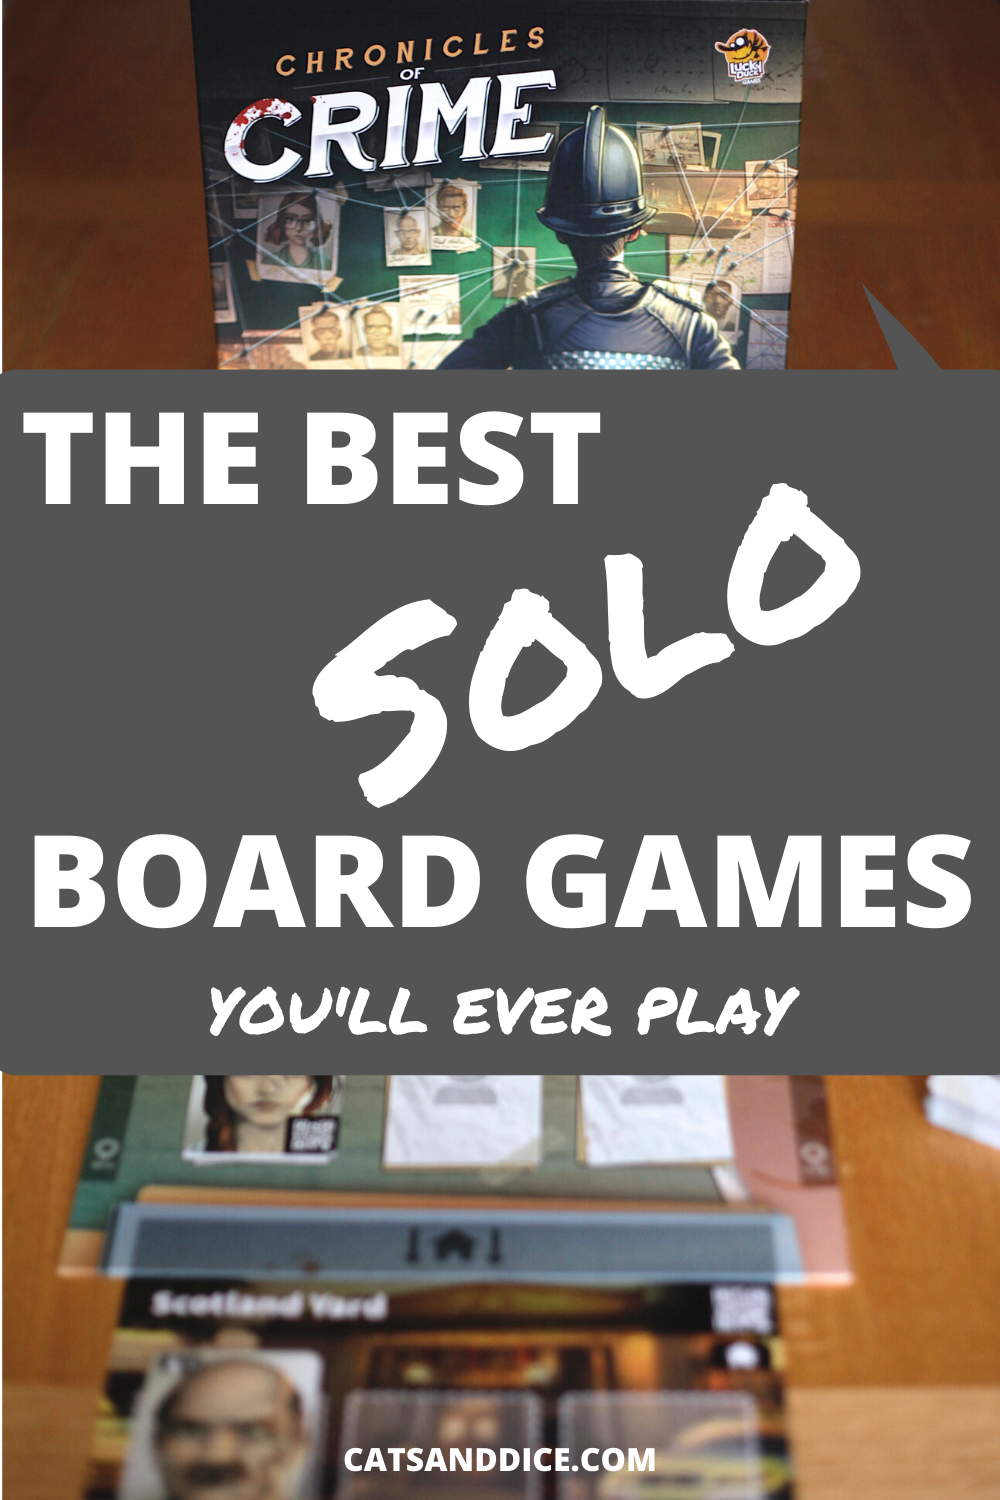 Board games for one? You bet! These are some of the best